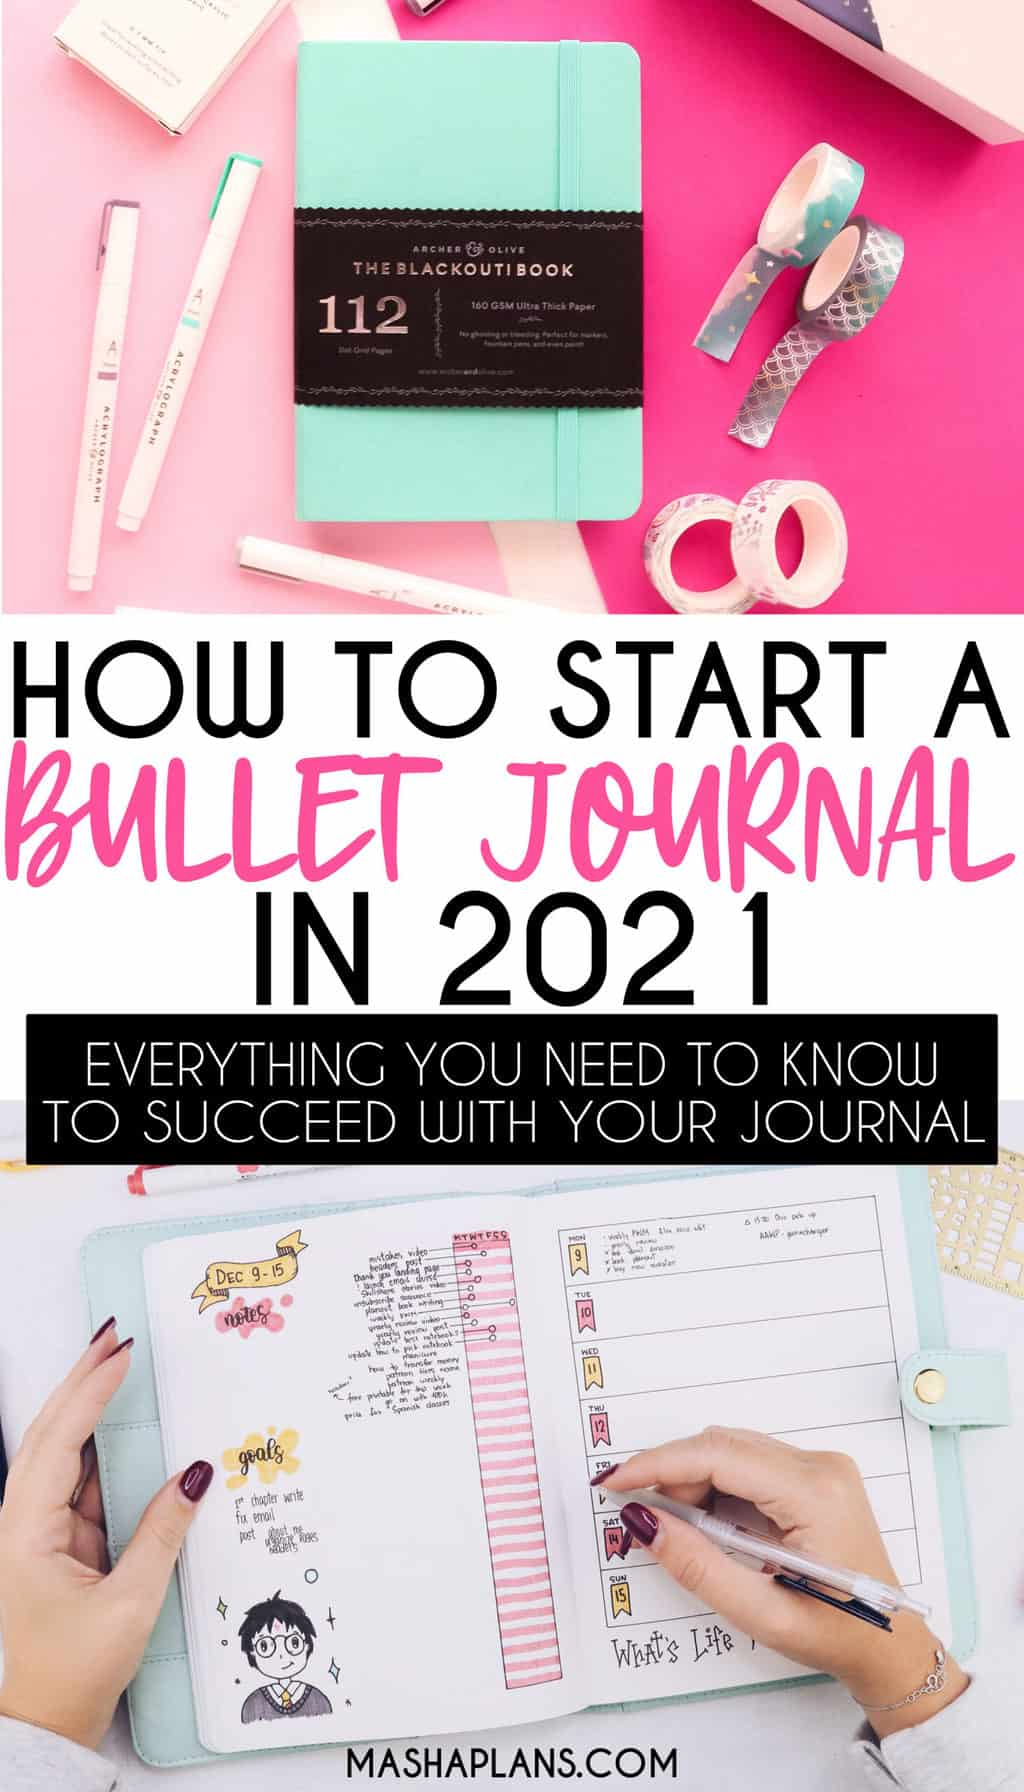 How to start a Bullet Journal in 2021 | Masha Plans